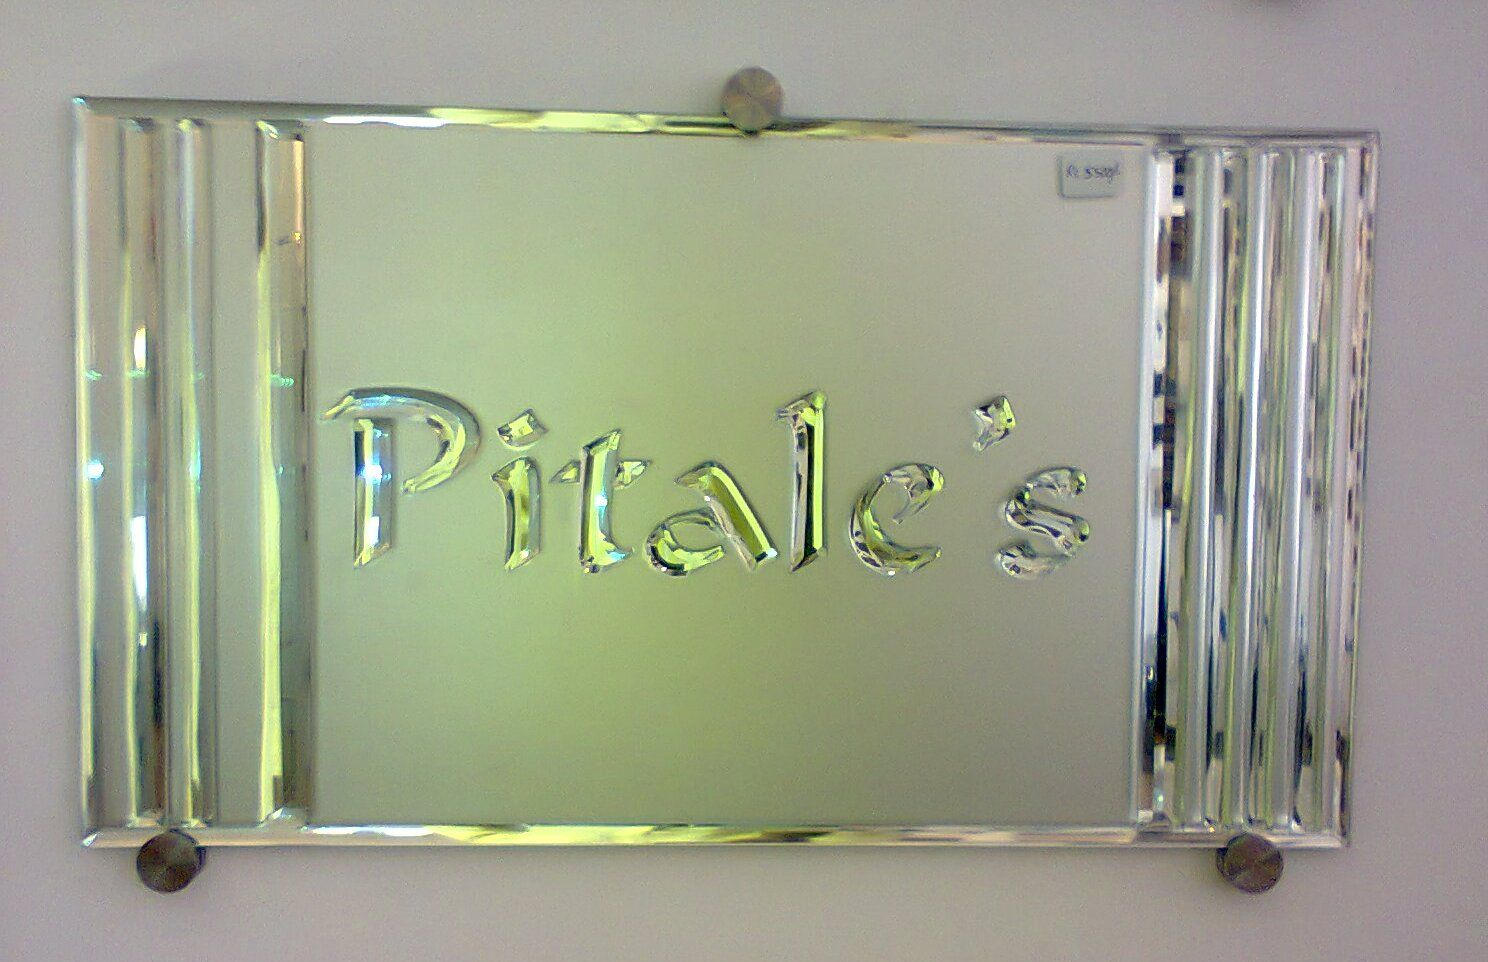 Glass Name Plate Design Modern Art Name Plate Design Plate